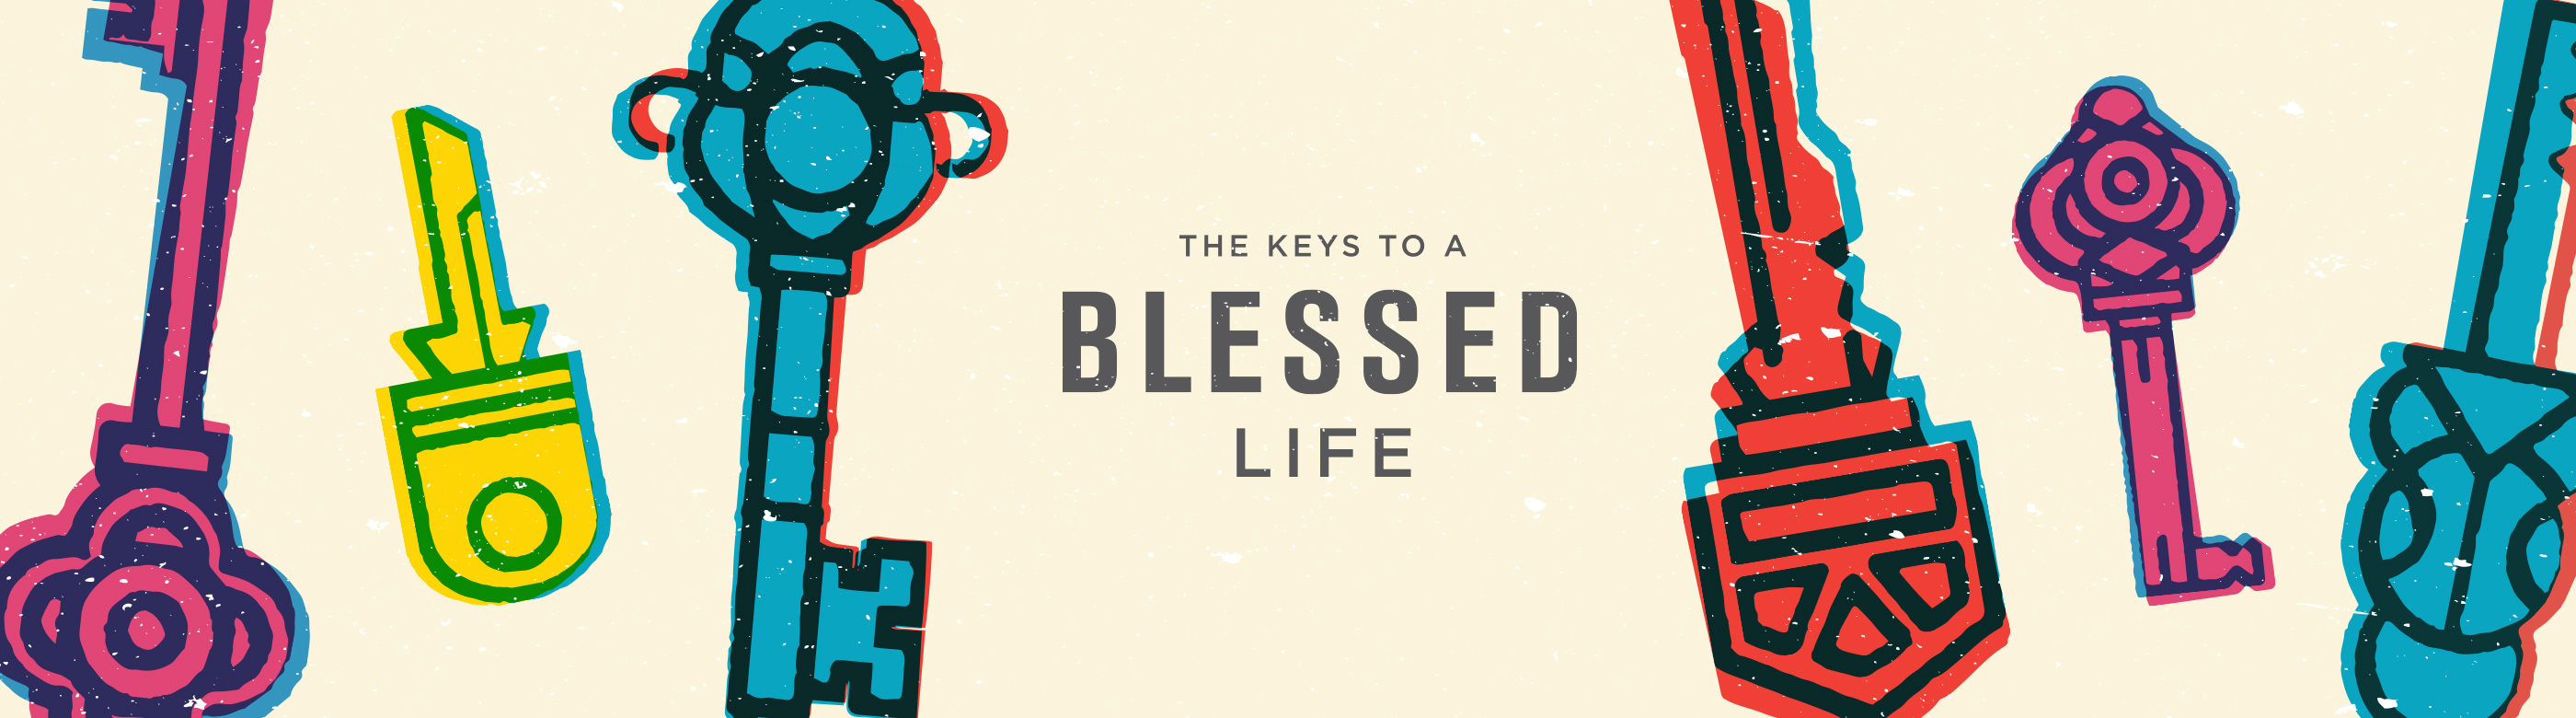 The Keys to a Blessed Life Sermon Series Idea